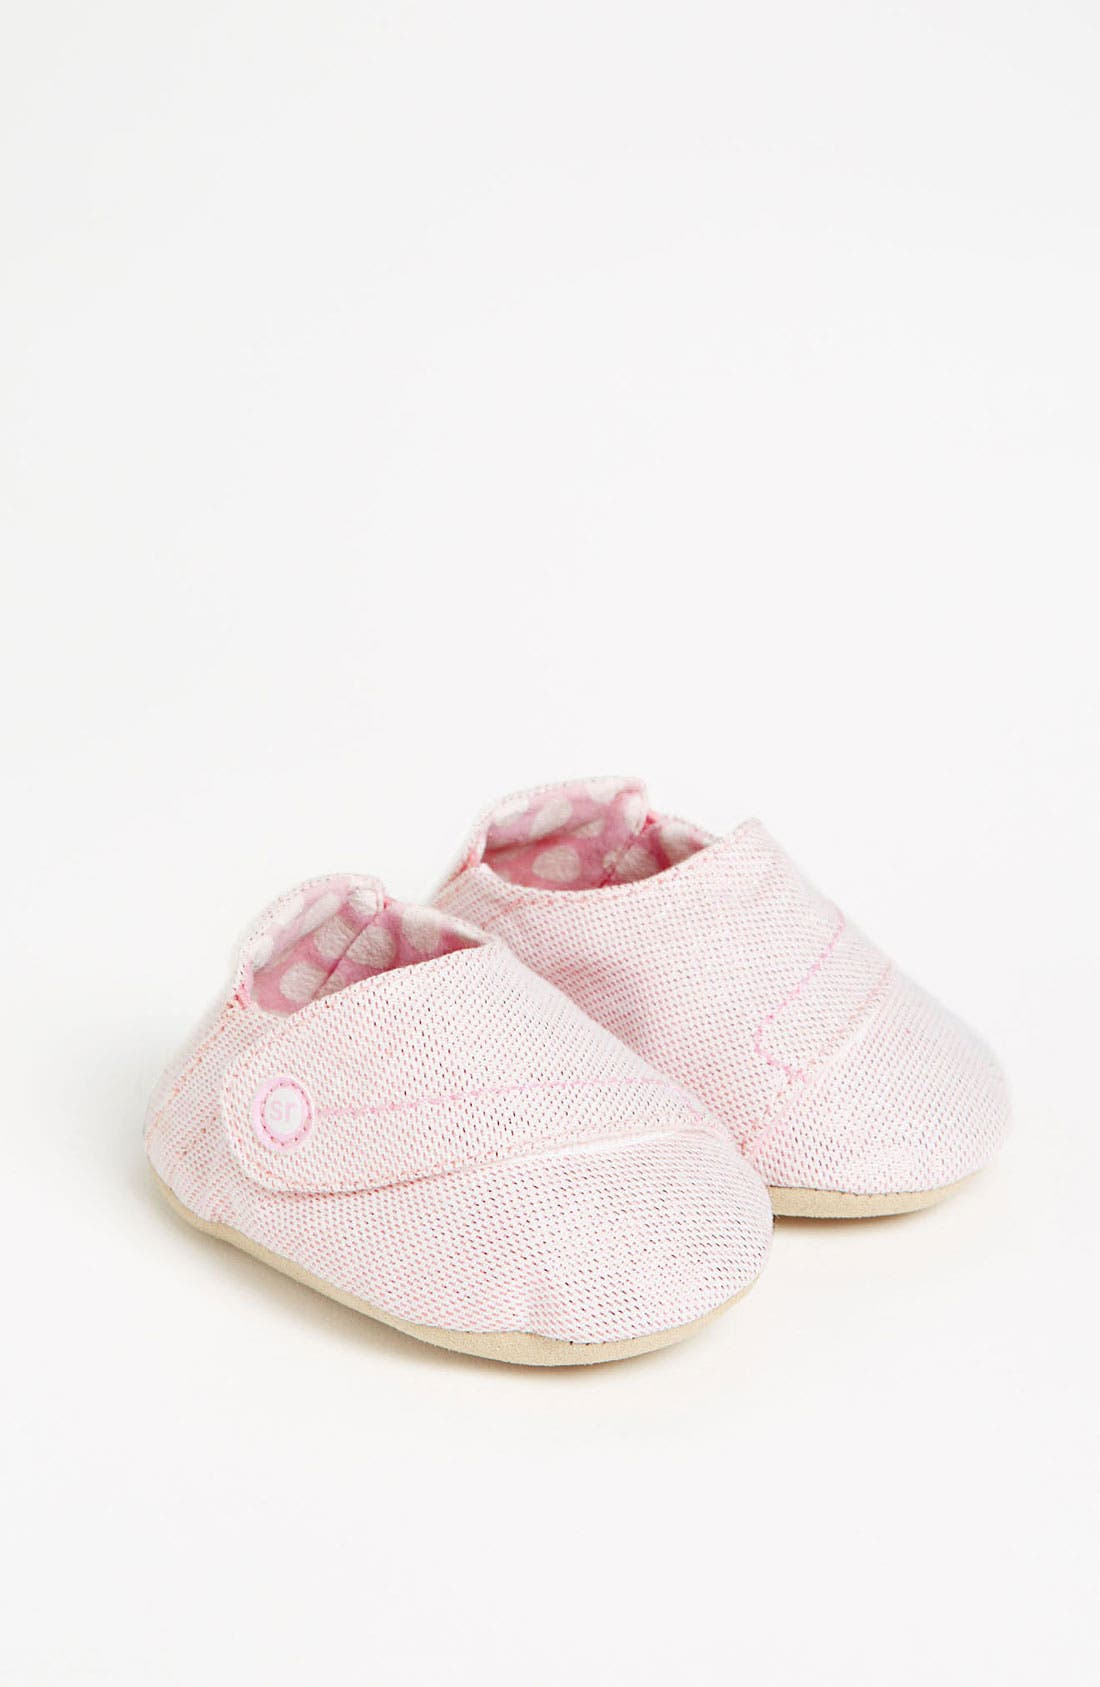 Alternate Image 1 Selected - Stride Rite 'Pink Dream' Crib Shoe (Baby)